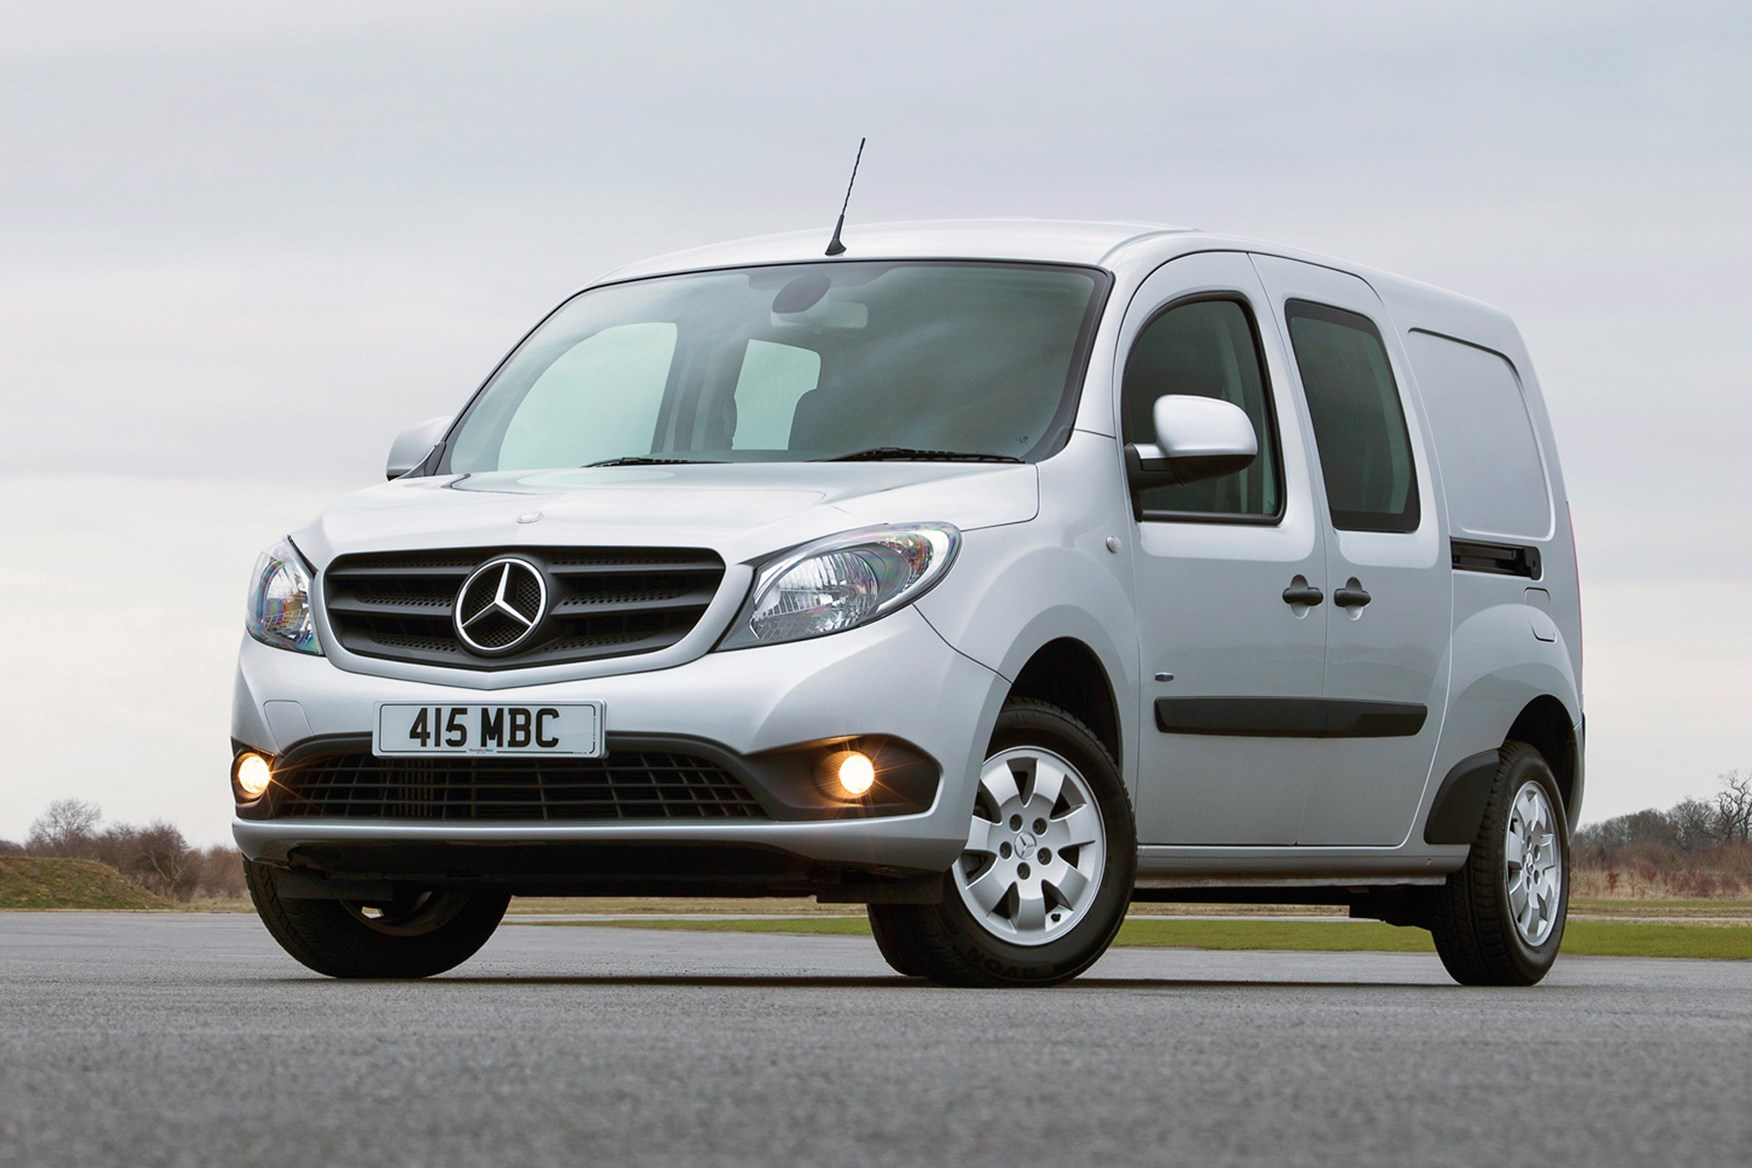 Mercedes-Benz Citan full review on Parkers Vans - front exterior